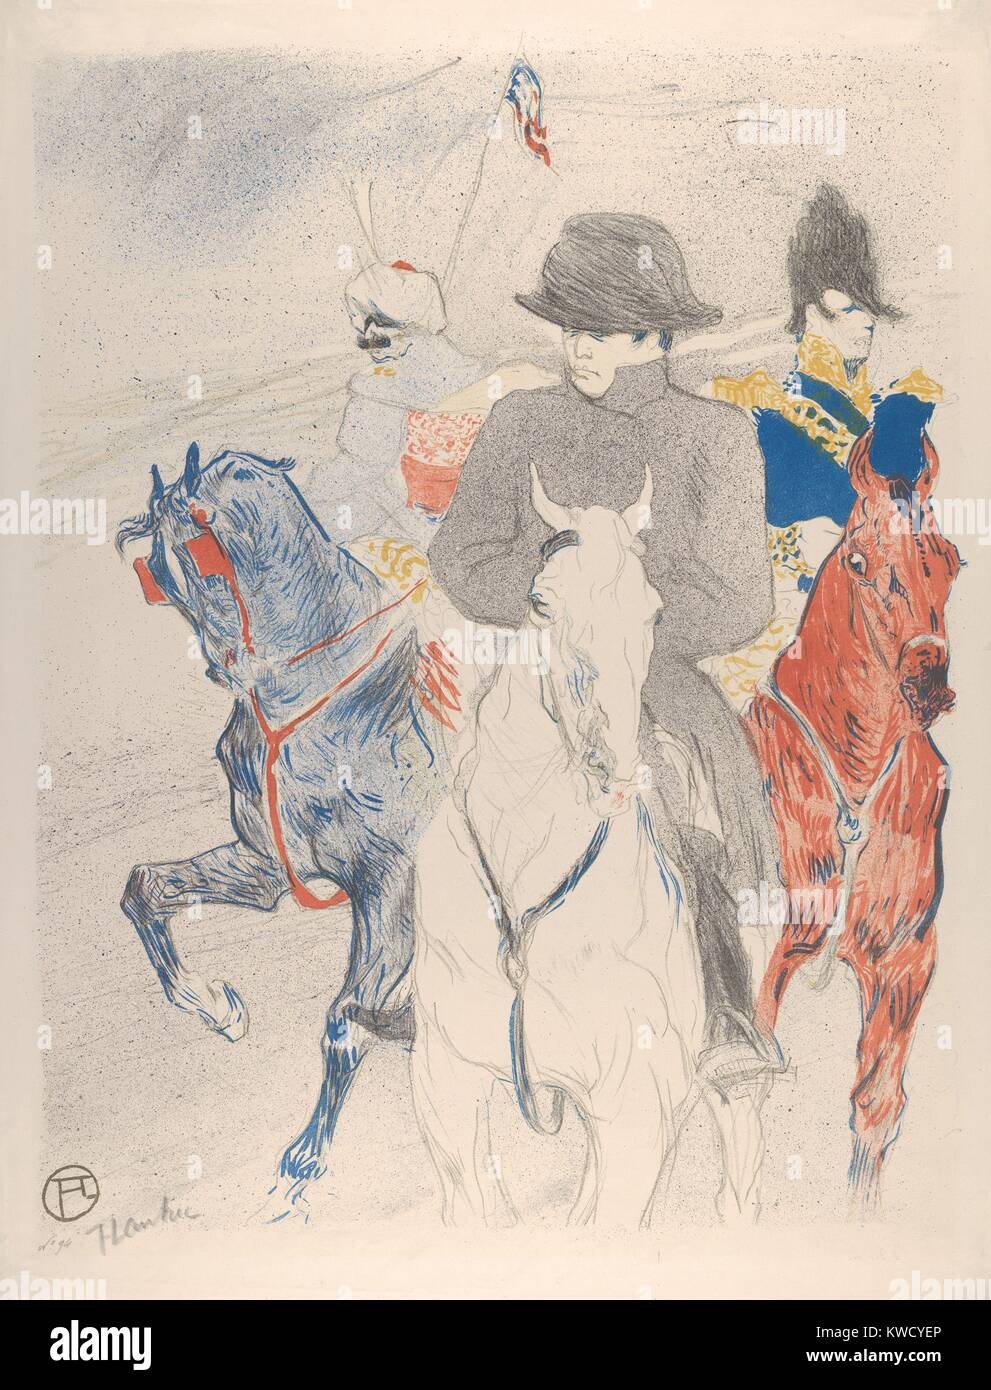 Napoleon, by Henri de Toulouse-Lautrec, 1895, French Post-Impressionist print. This lithograph is based on a drawing Stock Photo